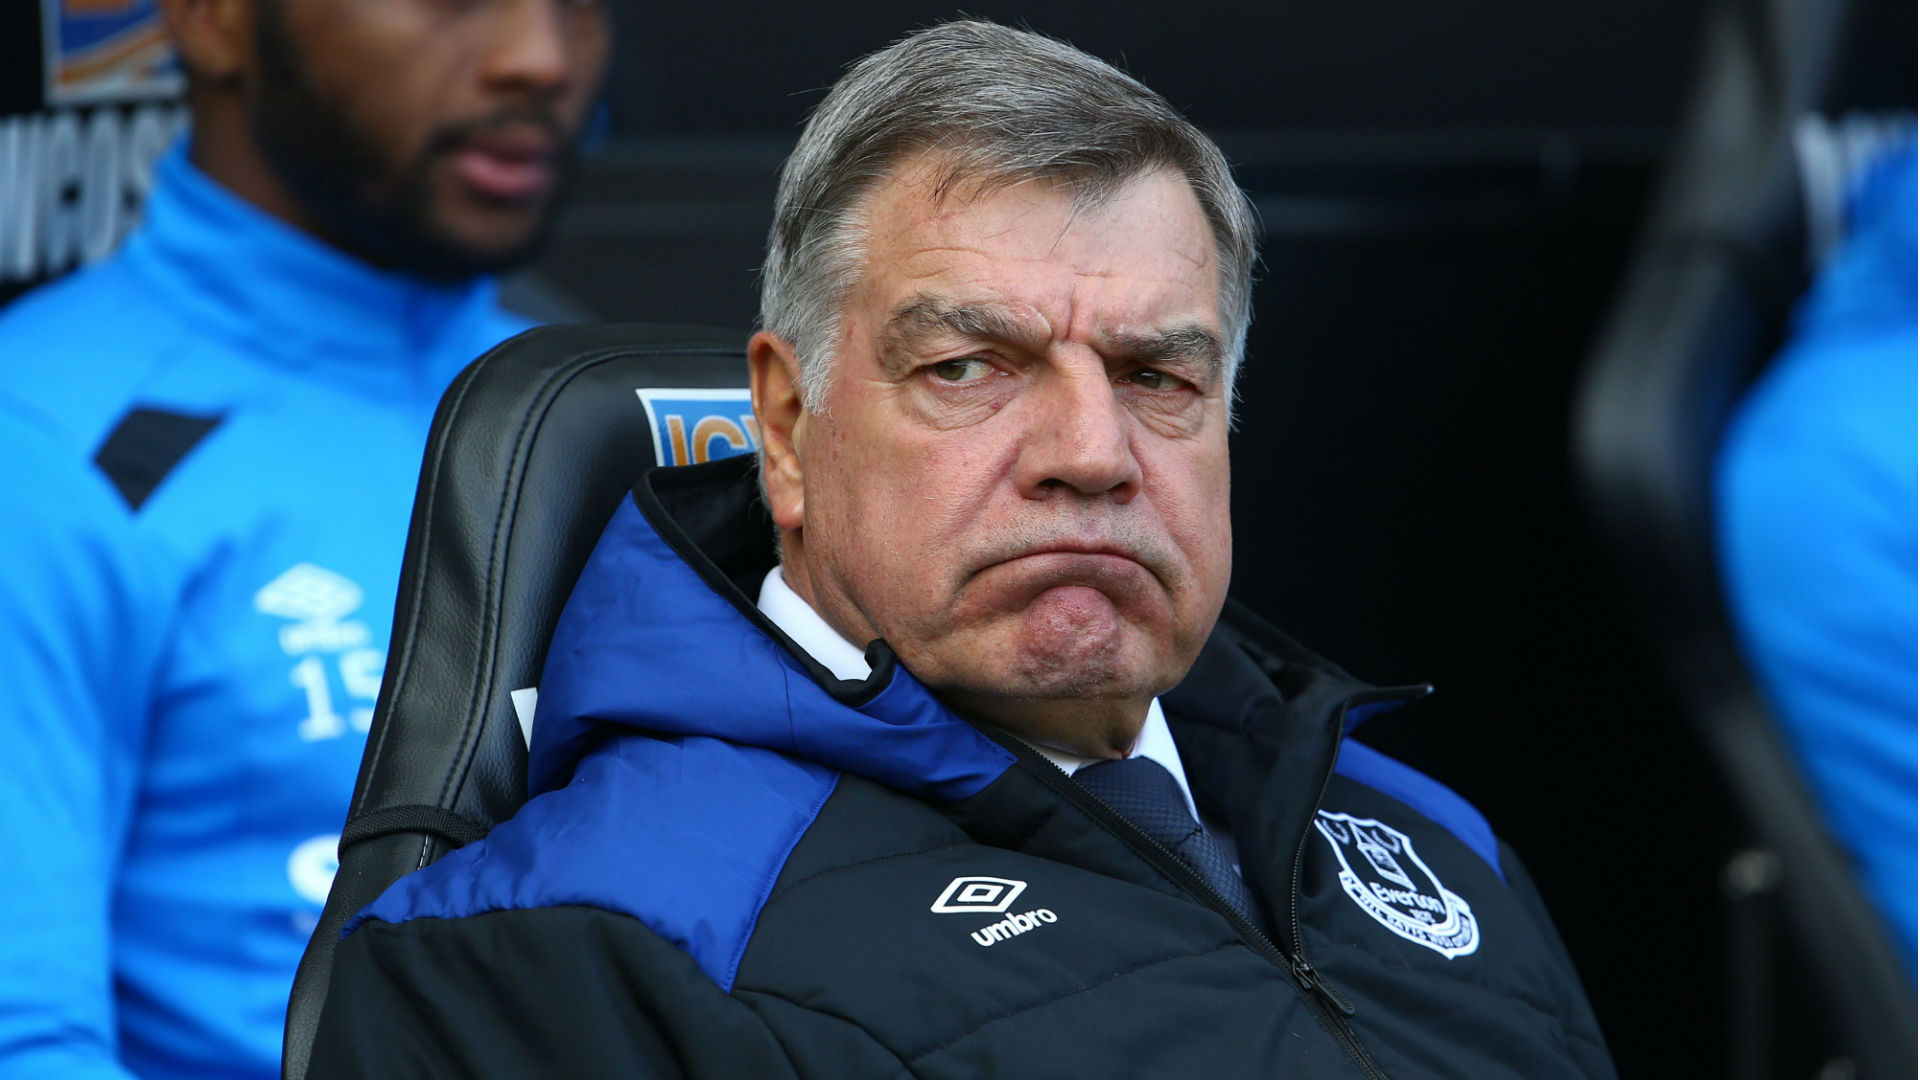 Allardyce sacked by Everton with Marco Silva leading candidate to take over